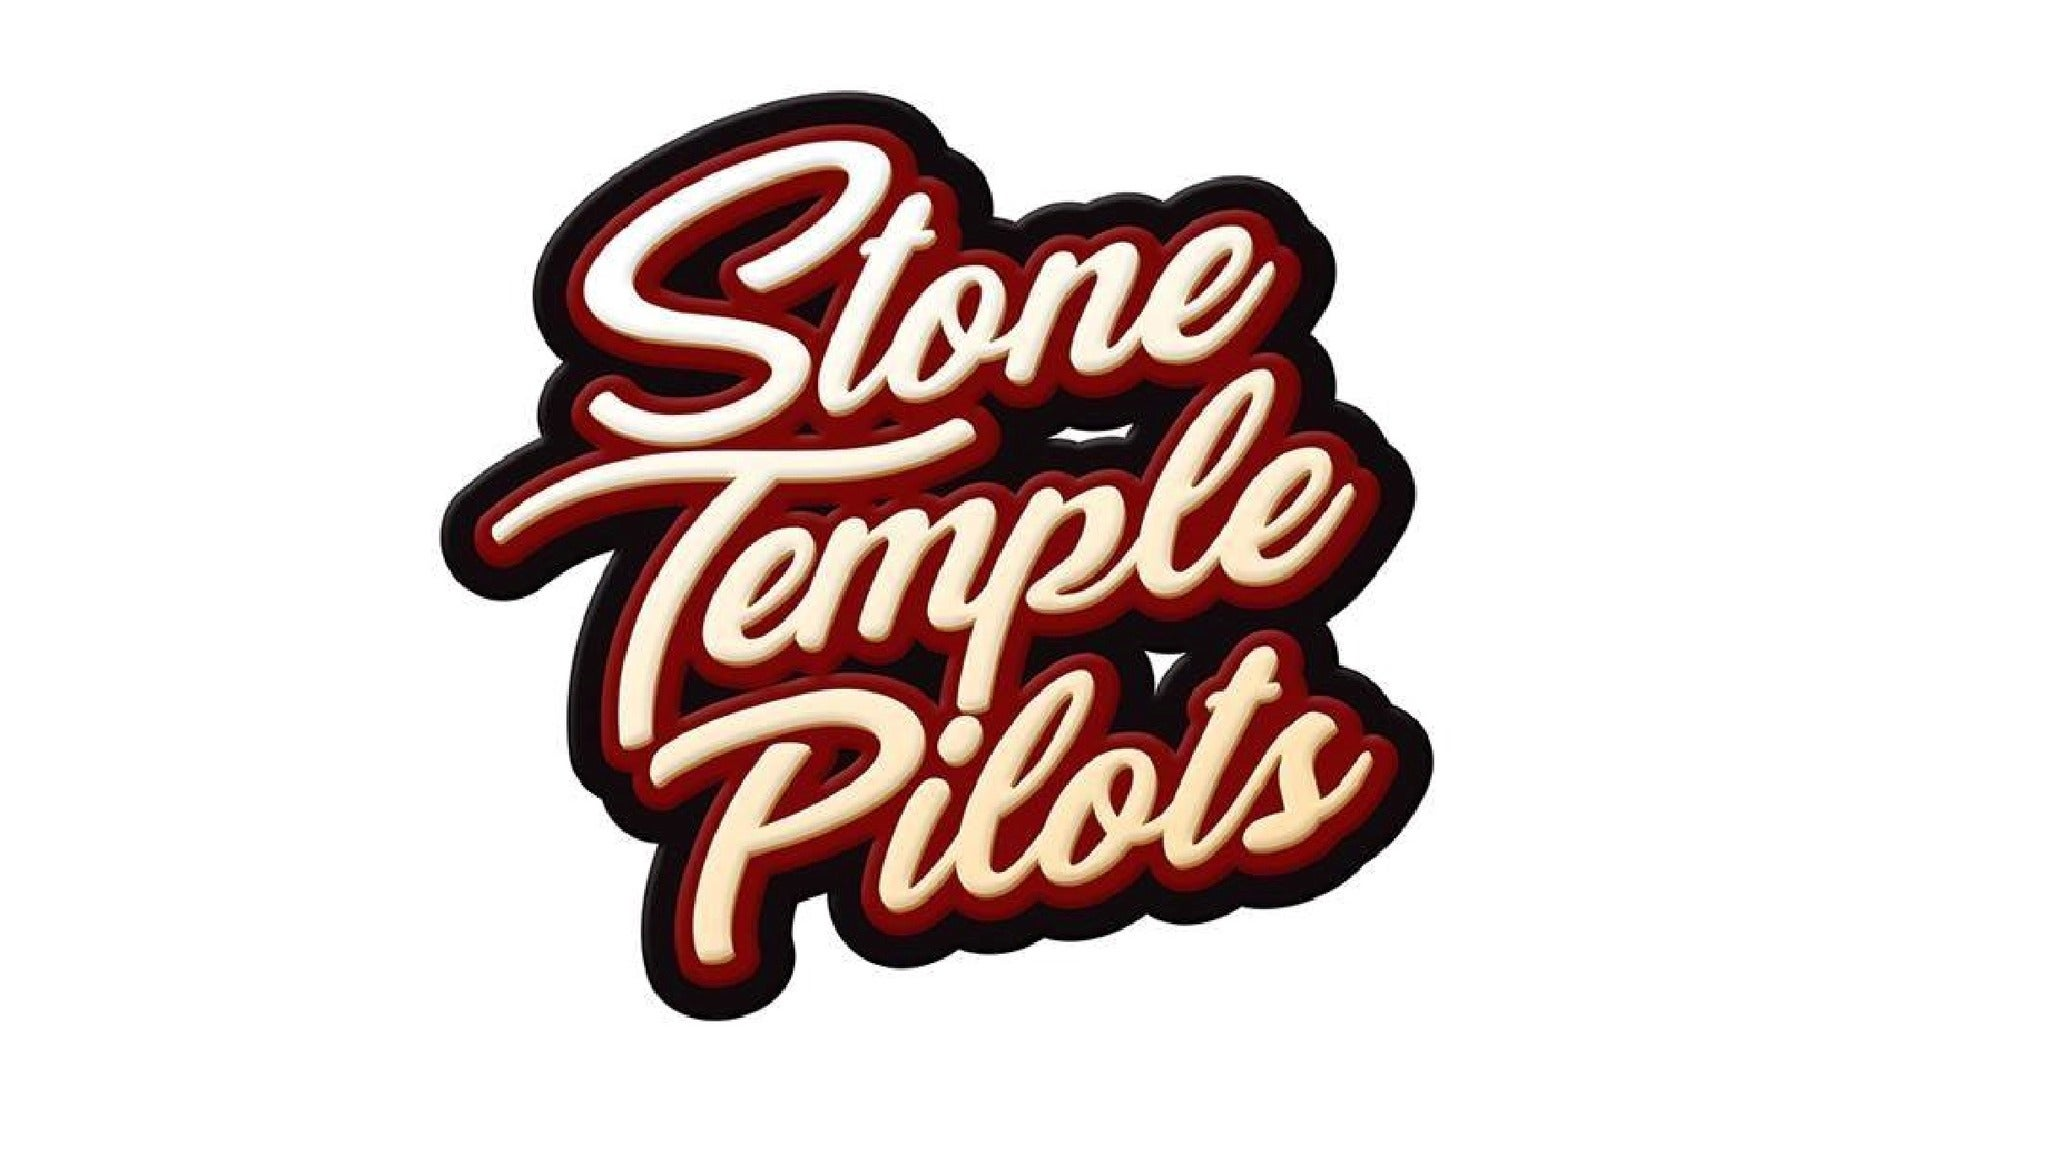 Stone Temple Pilots * THE CULT * BUSH - Revolution 3 Tour